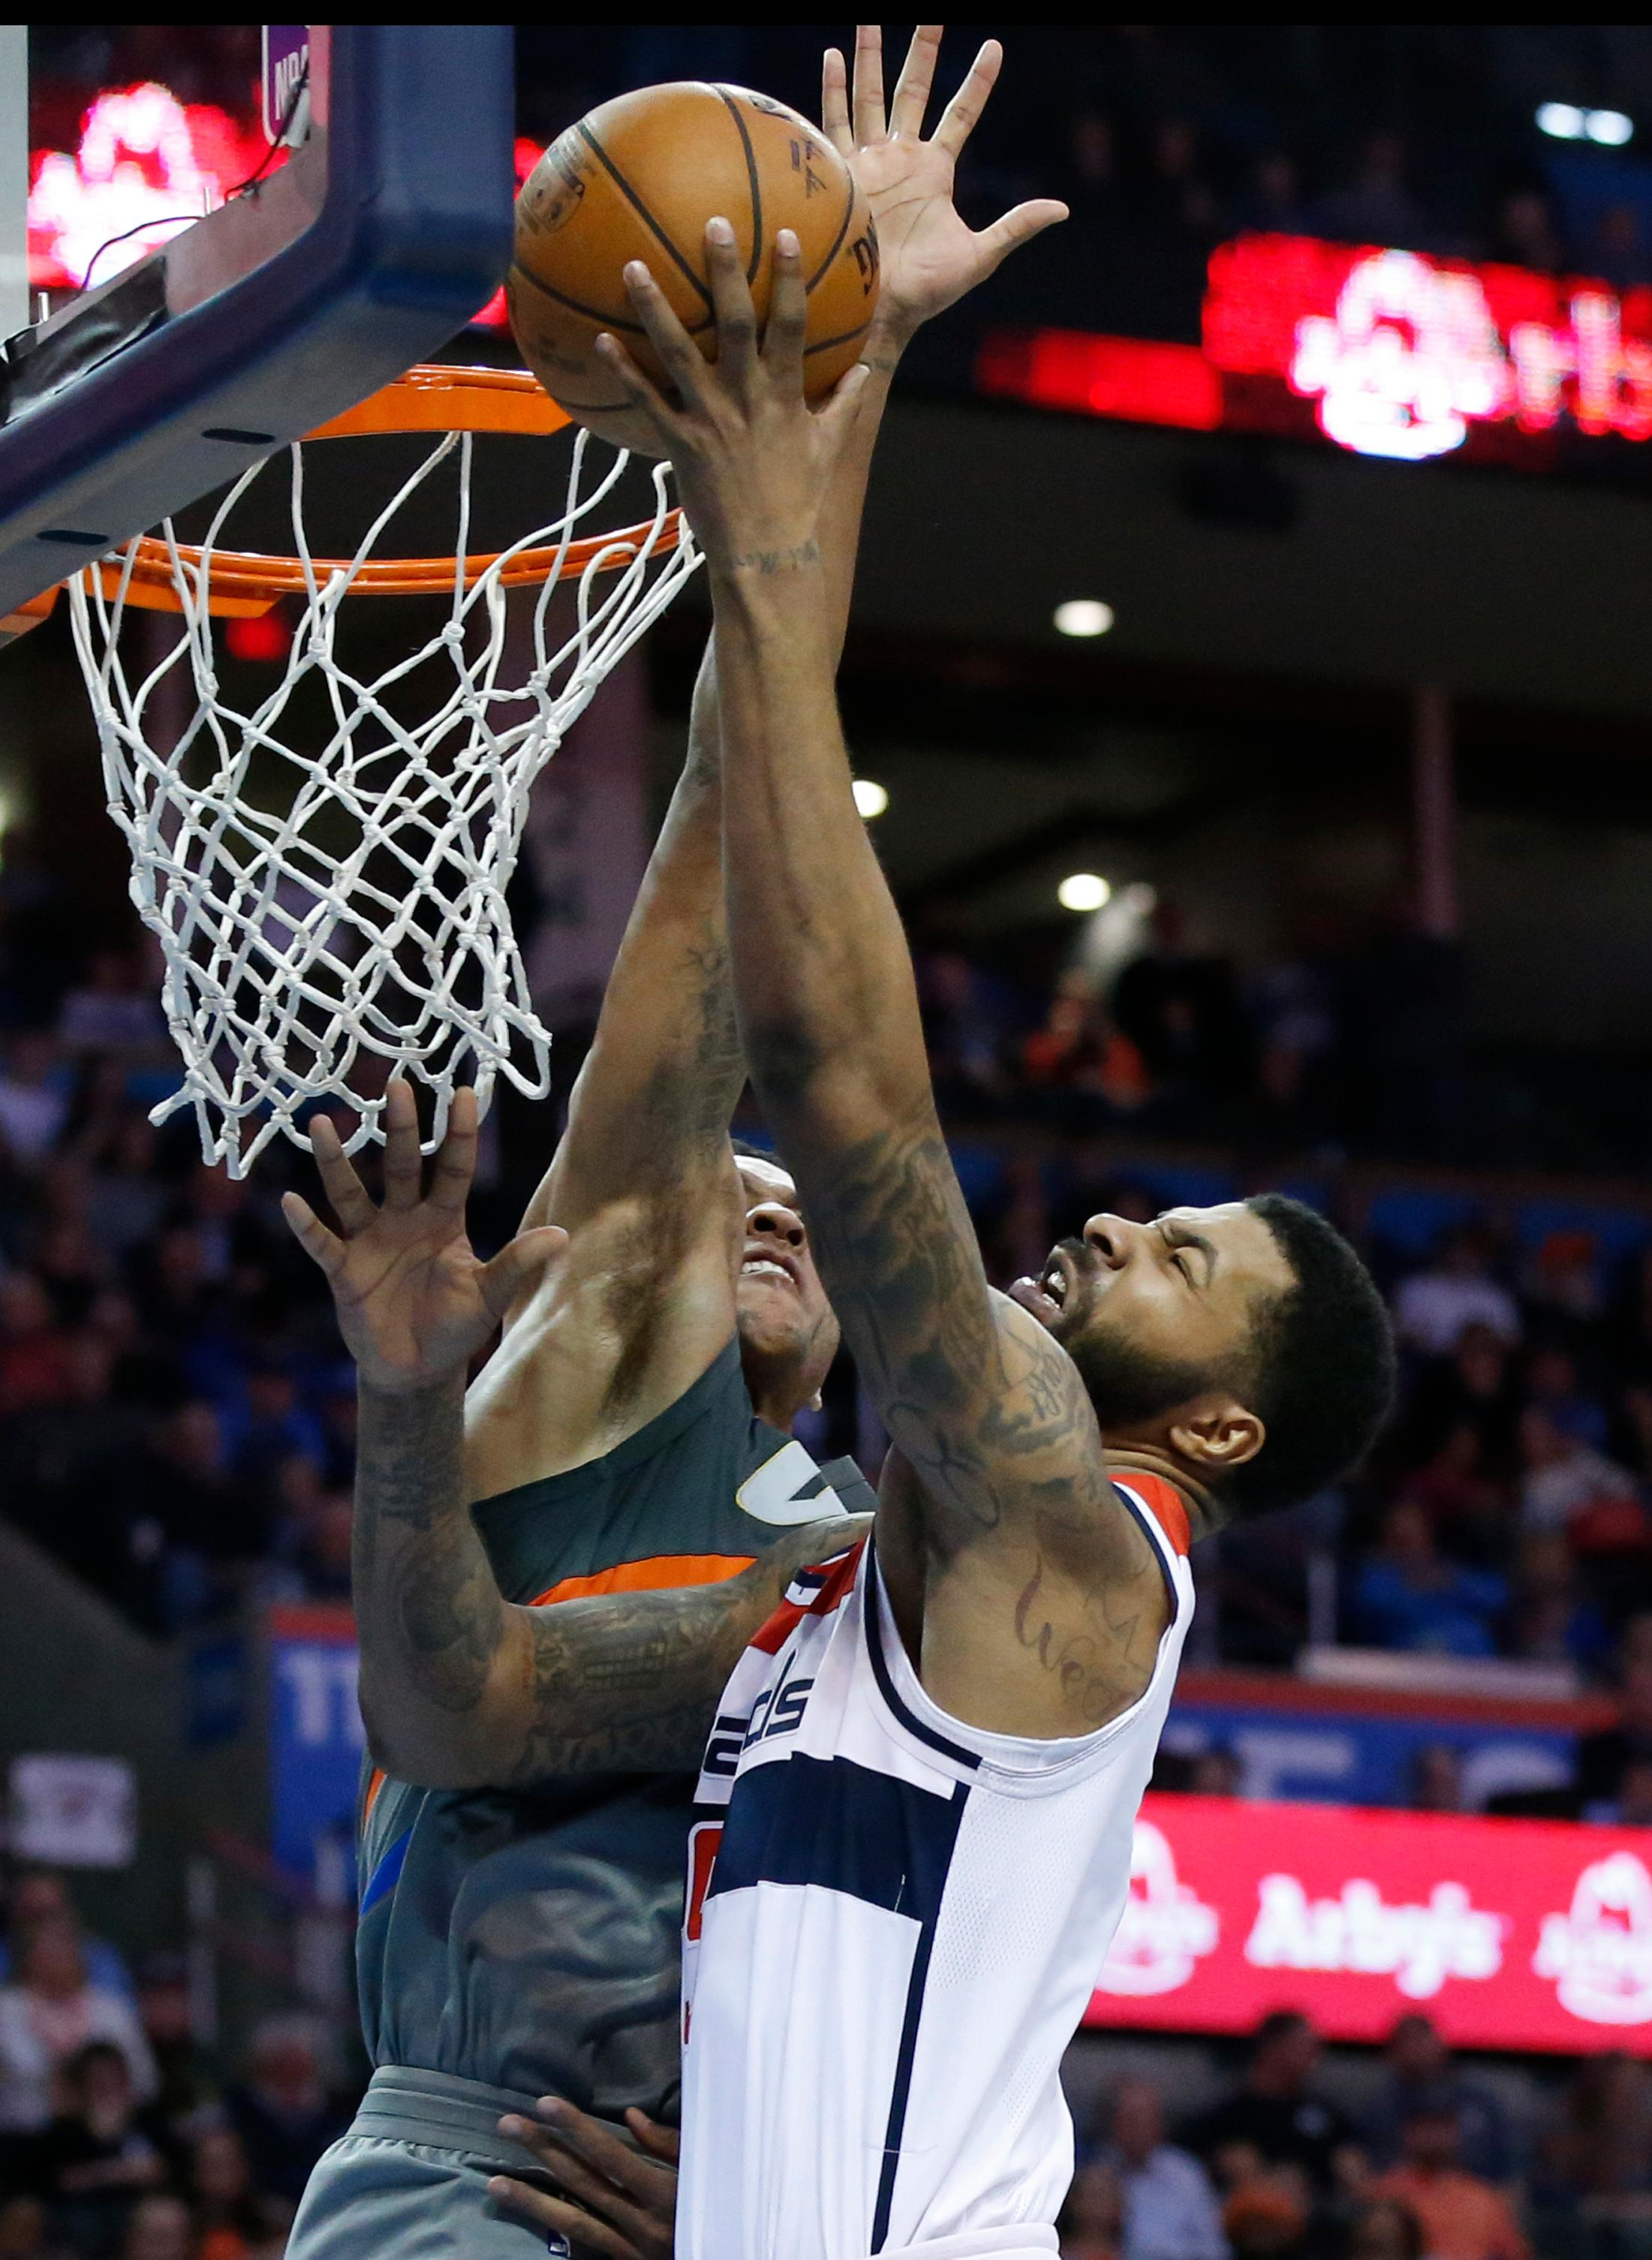 Washington Wizards forward Markieff Morris shoots during the second quarter of the team's NBA basketball game against the Oklahoma City Thunder in Oklahoma City, Thursday, Jan. 25, 2018. (AP Photo/Sue Ogrocki)